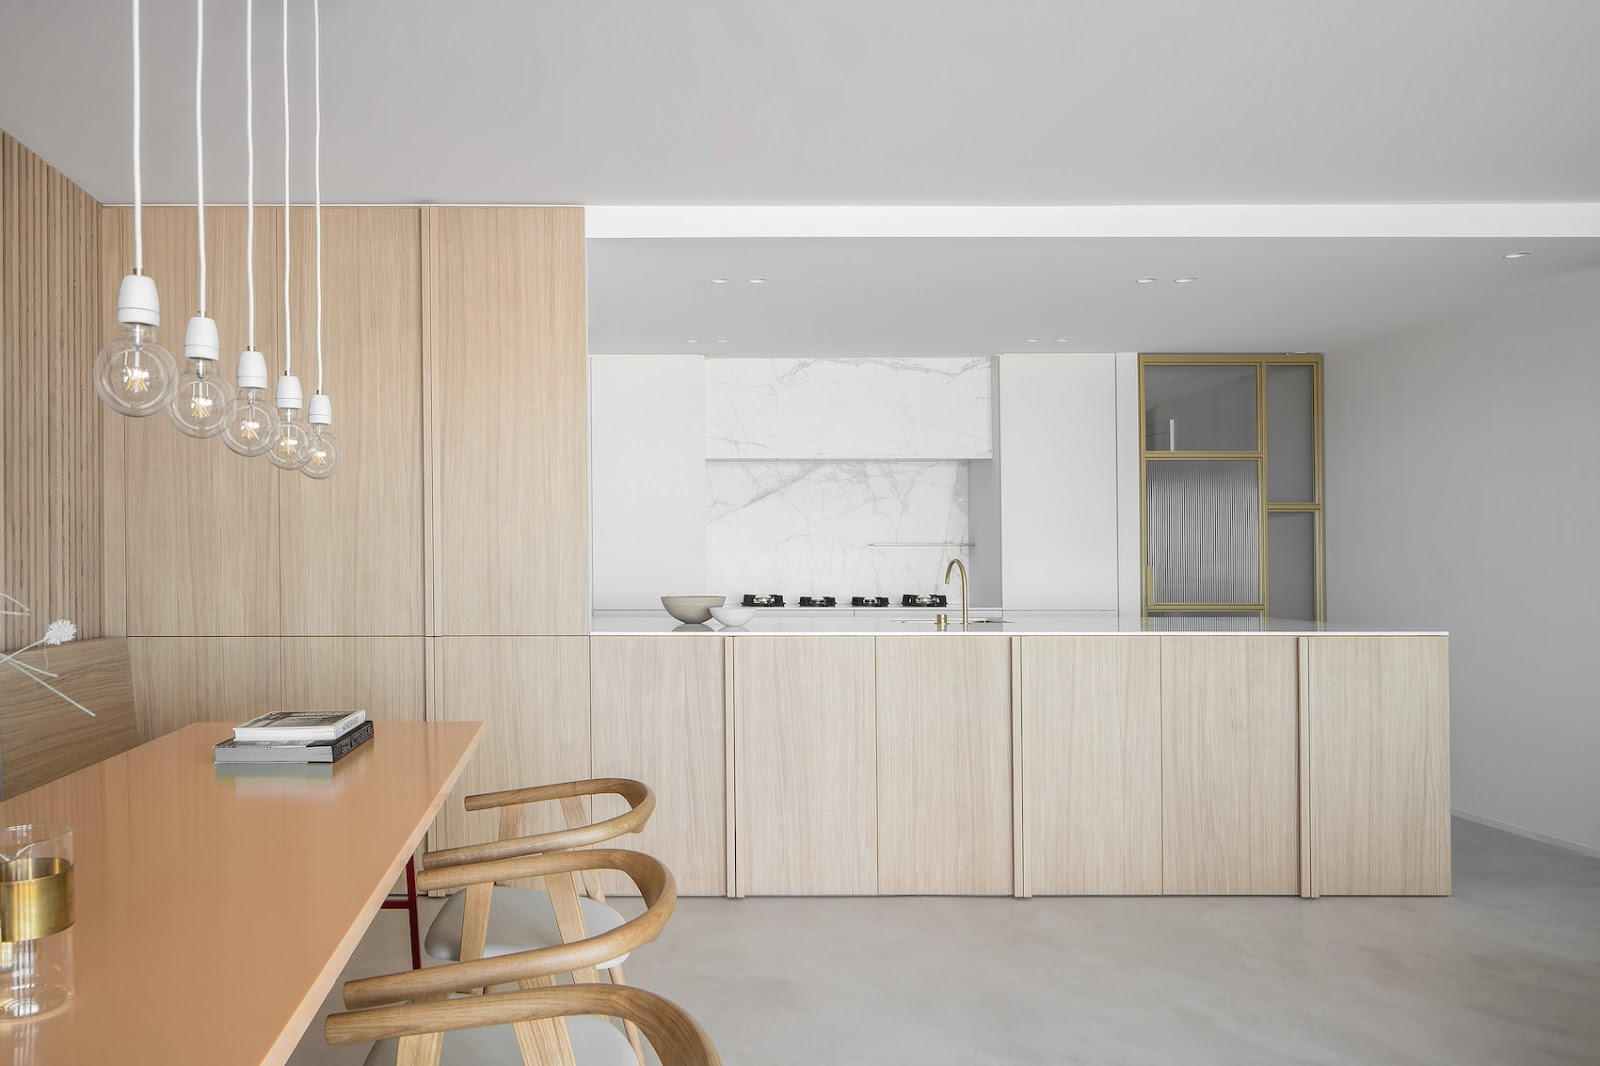 ilaria fatone - Elegance and Simplicity in a Minimal Home - dining room